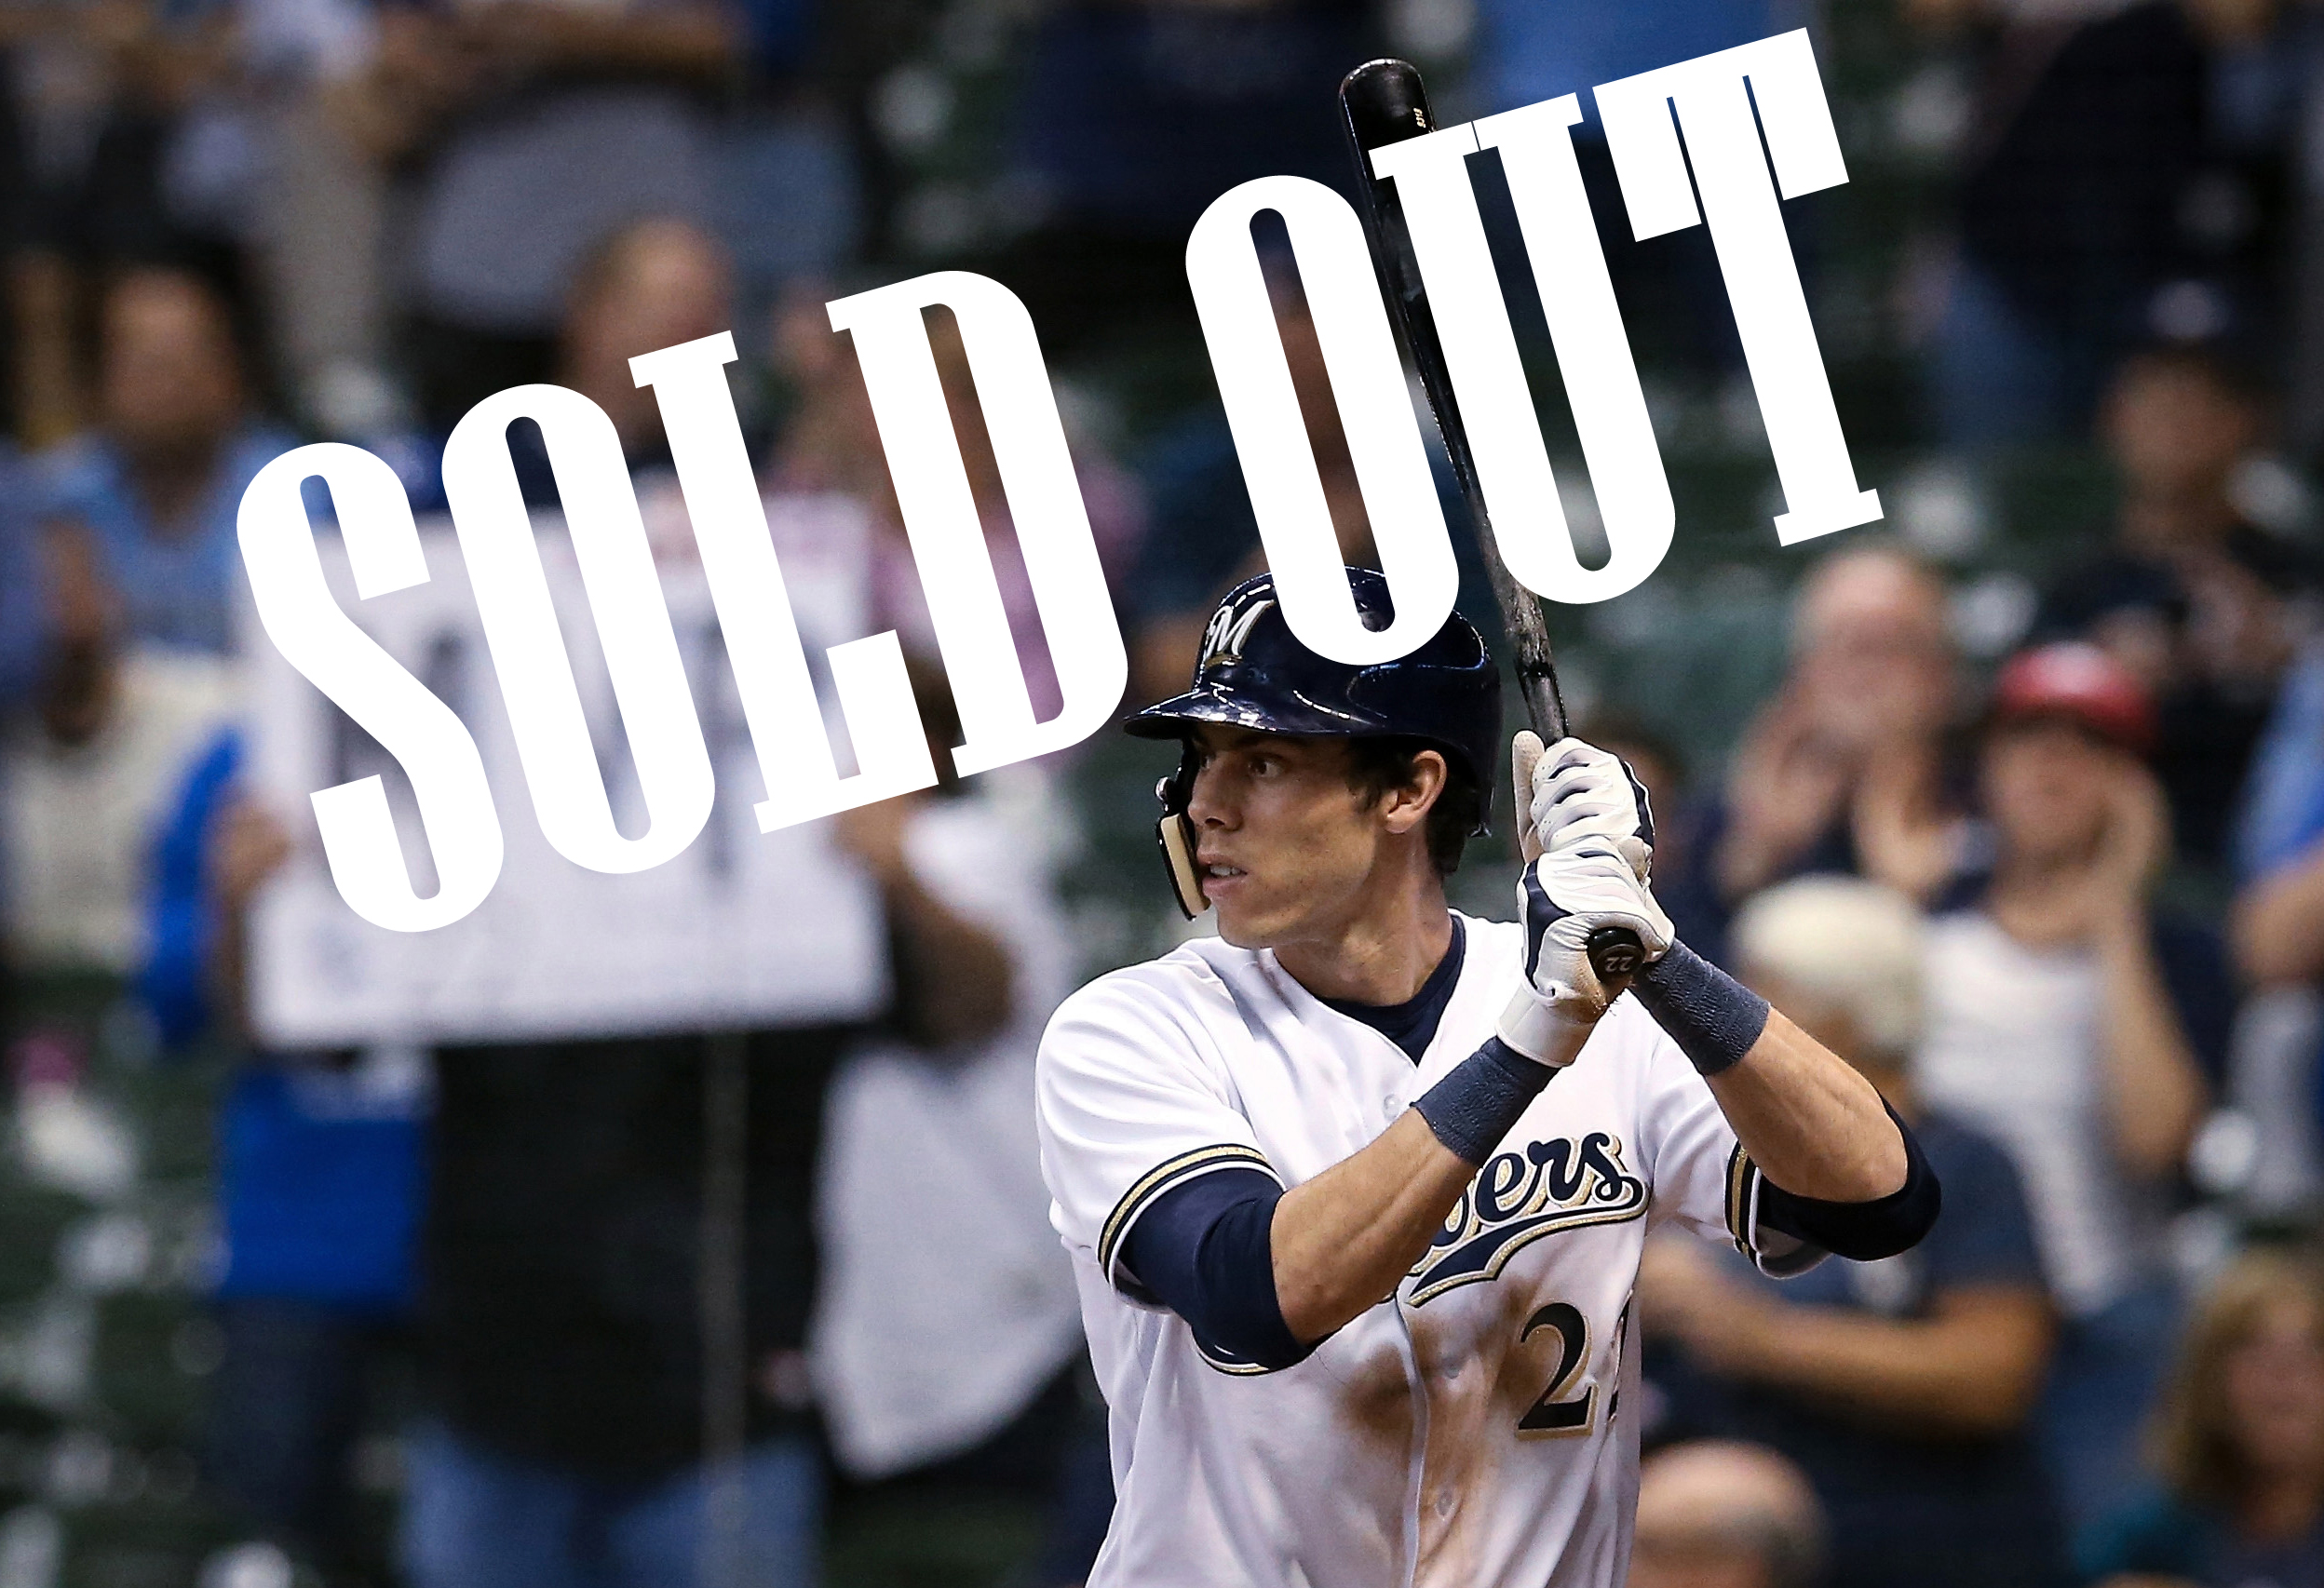 yelich sold out.jpg